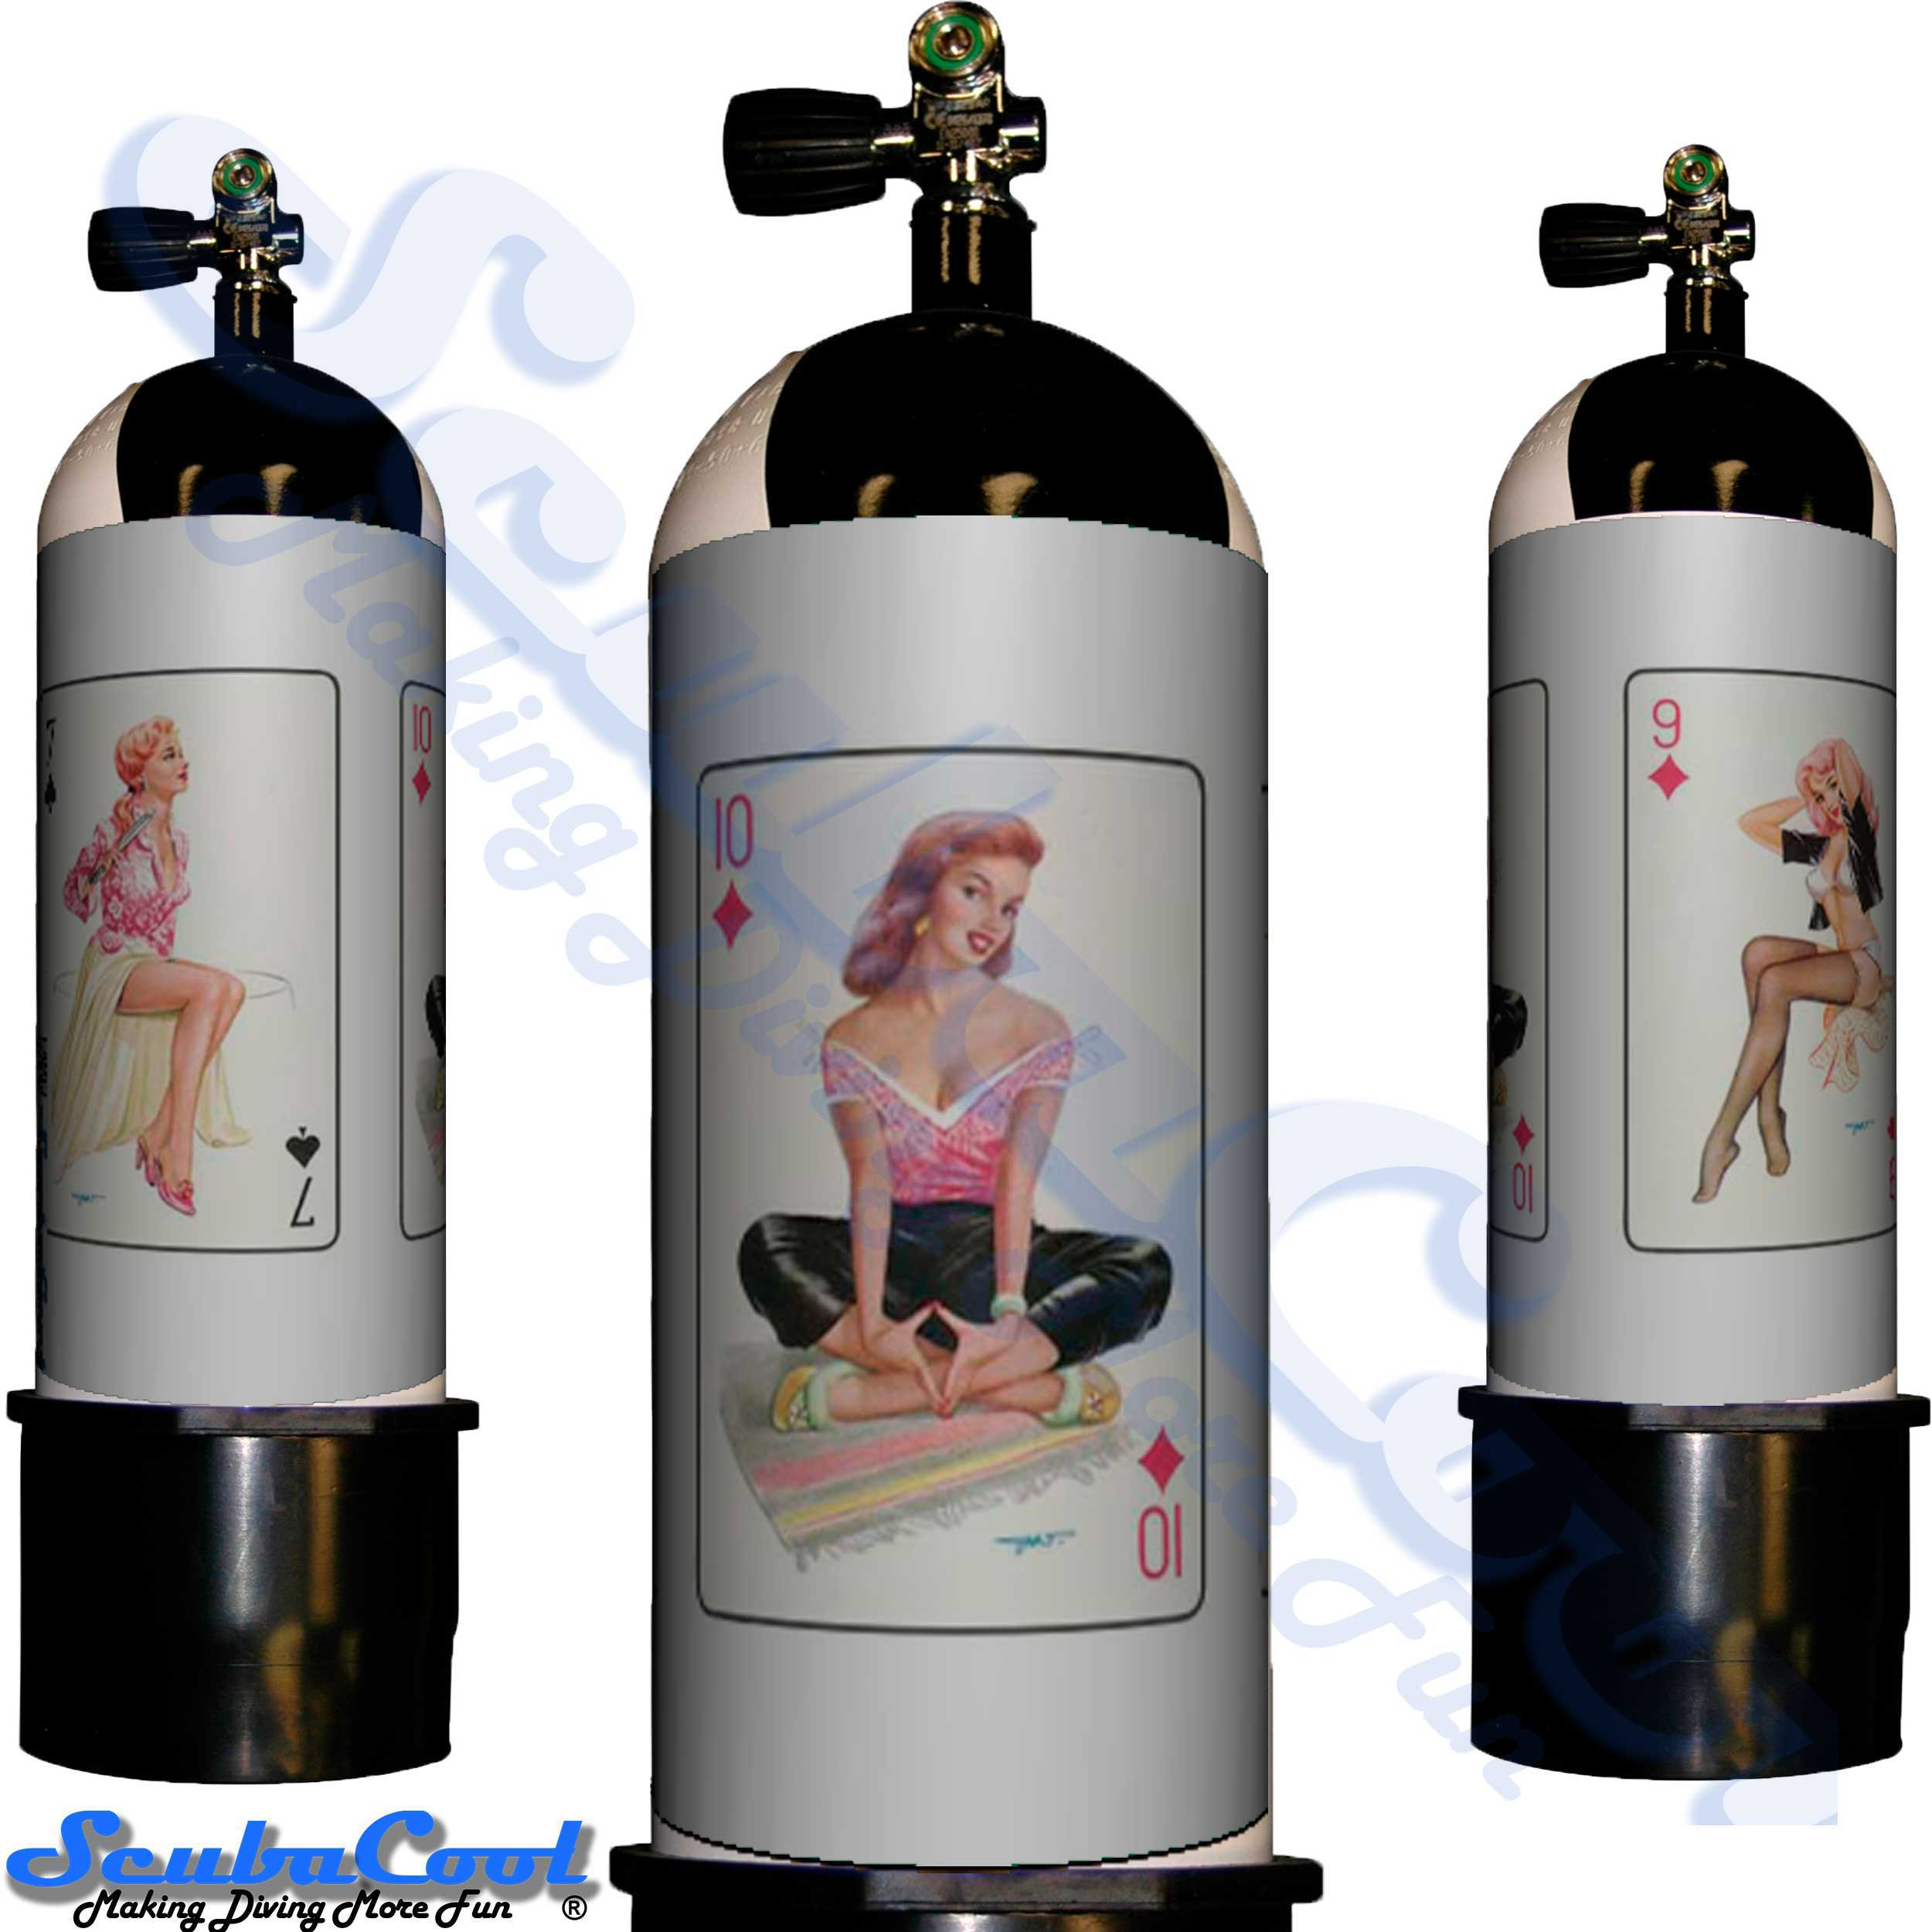 3400 Scubacool Scuba Dive Gas Cylinder Tank Cover NOT neoprene